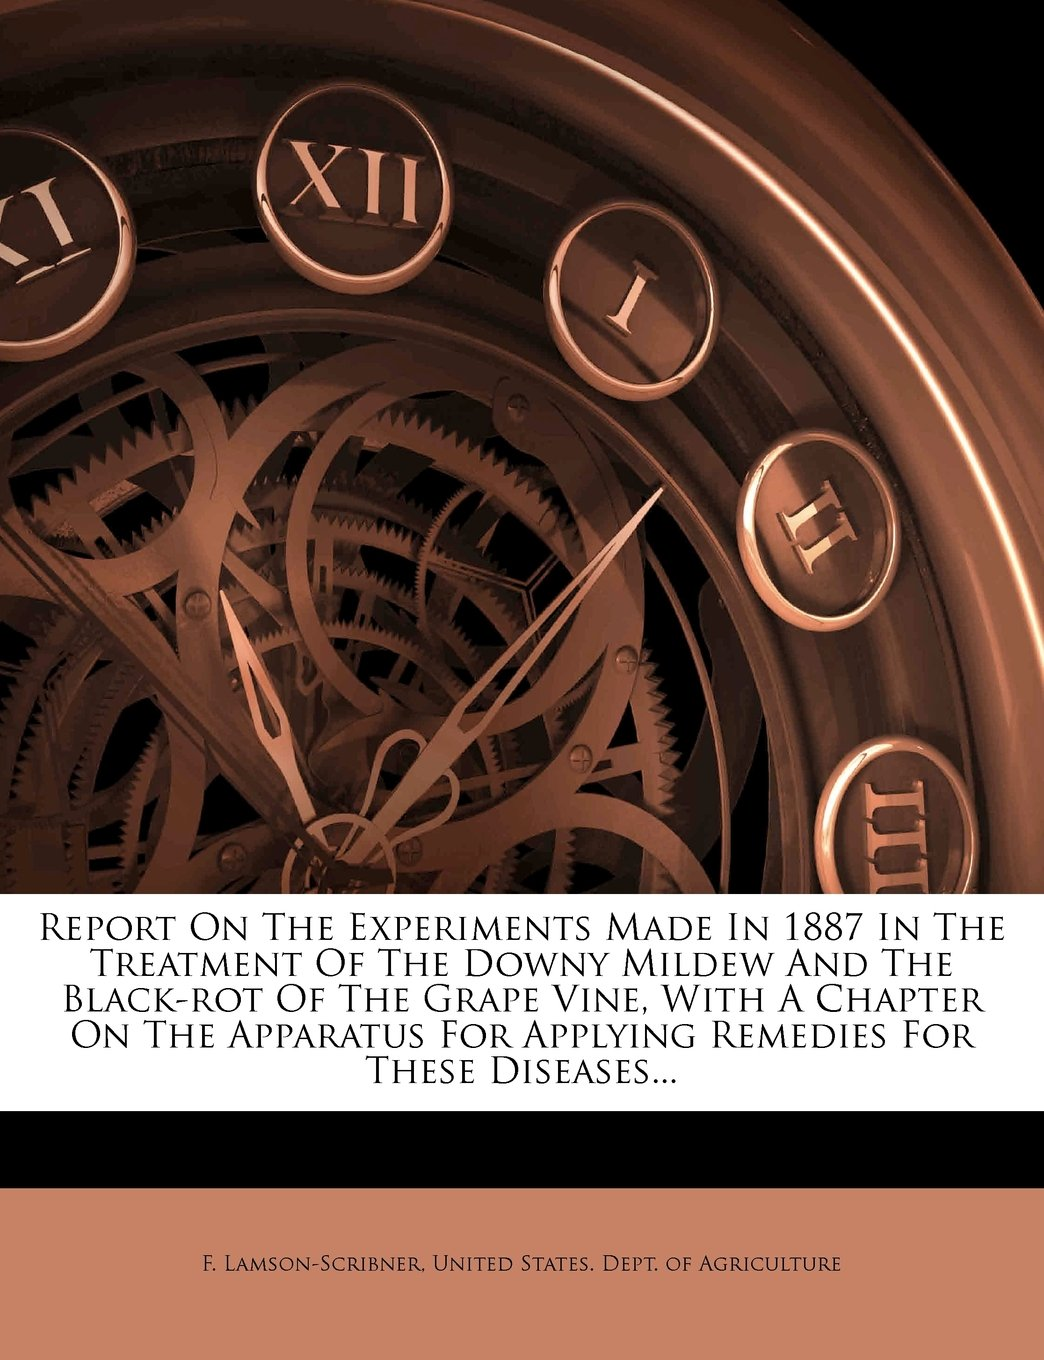 Report On The Experiments Made In 1887 In The Treatment Of The Downy Mildew And The Black-rot Of The Grape Vine, With A Chapter On The Apparatus For Applying Remedies For These Diseases... ebook